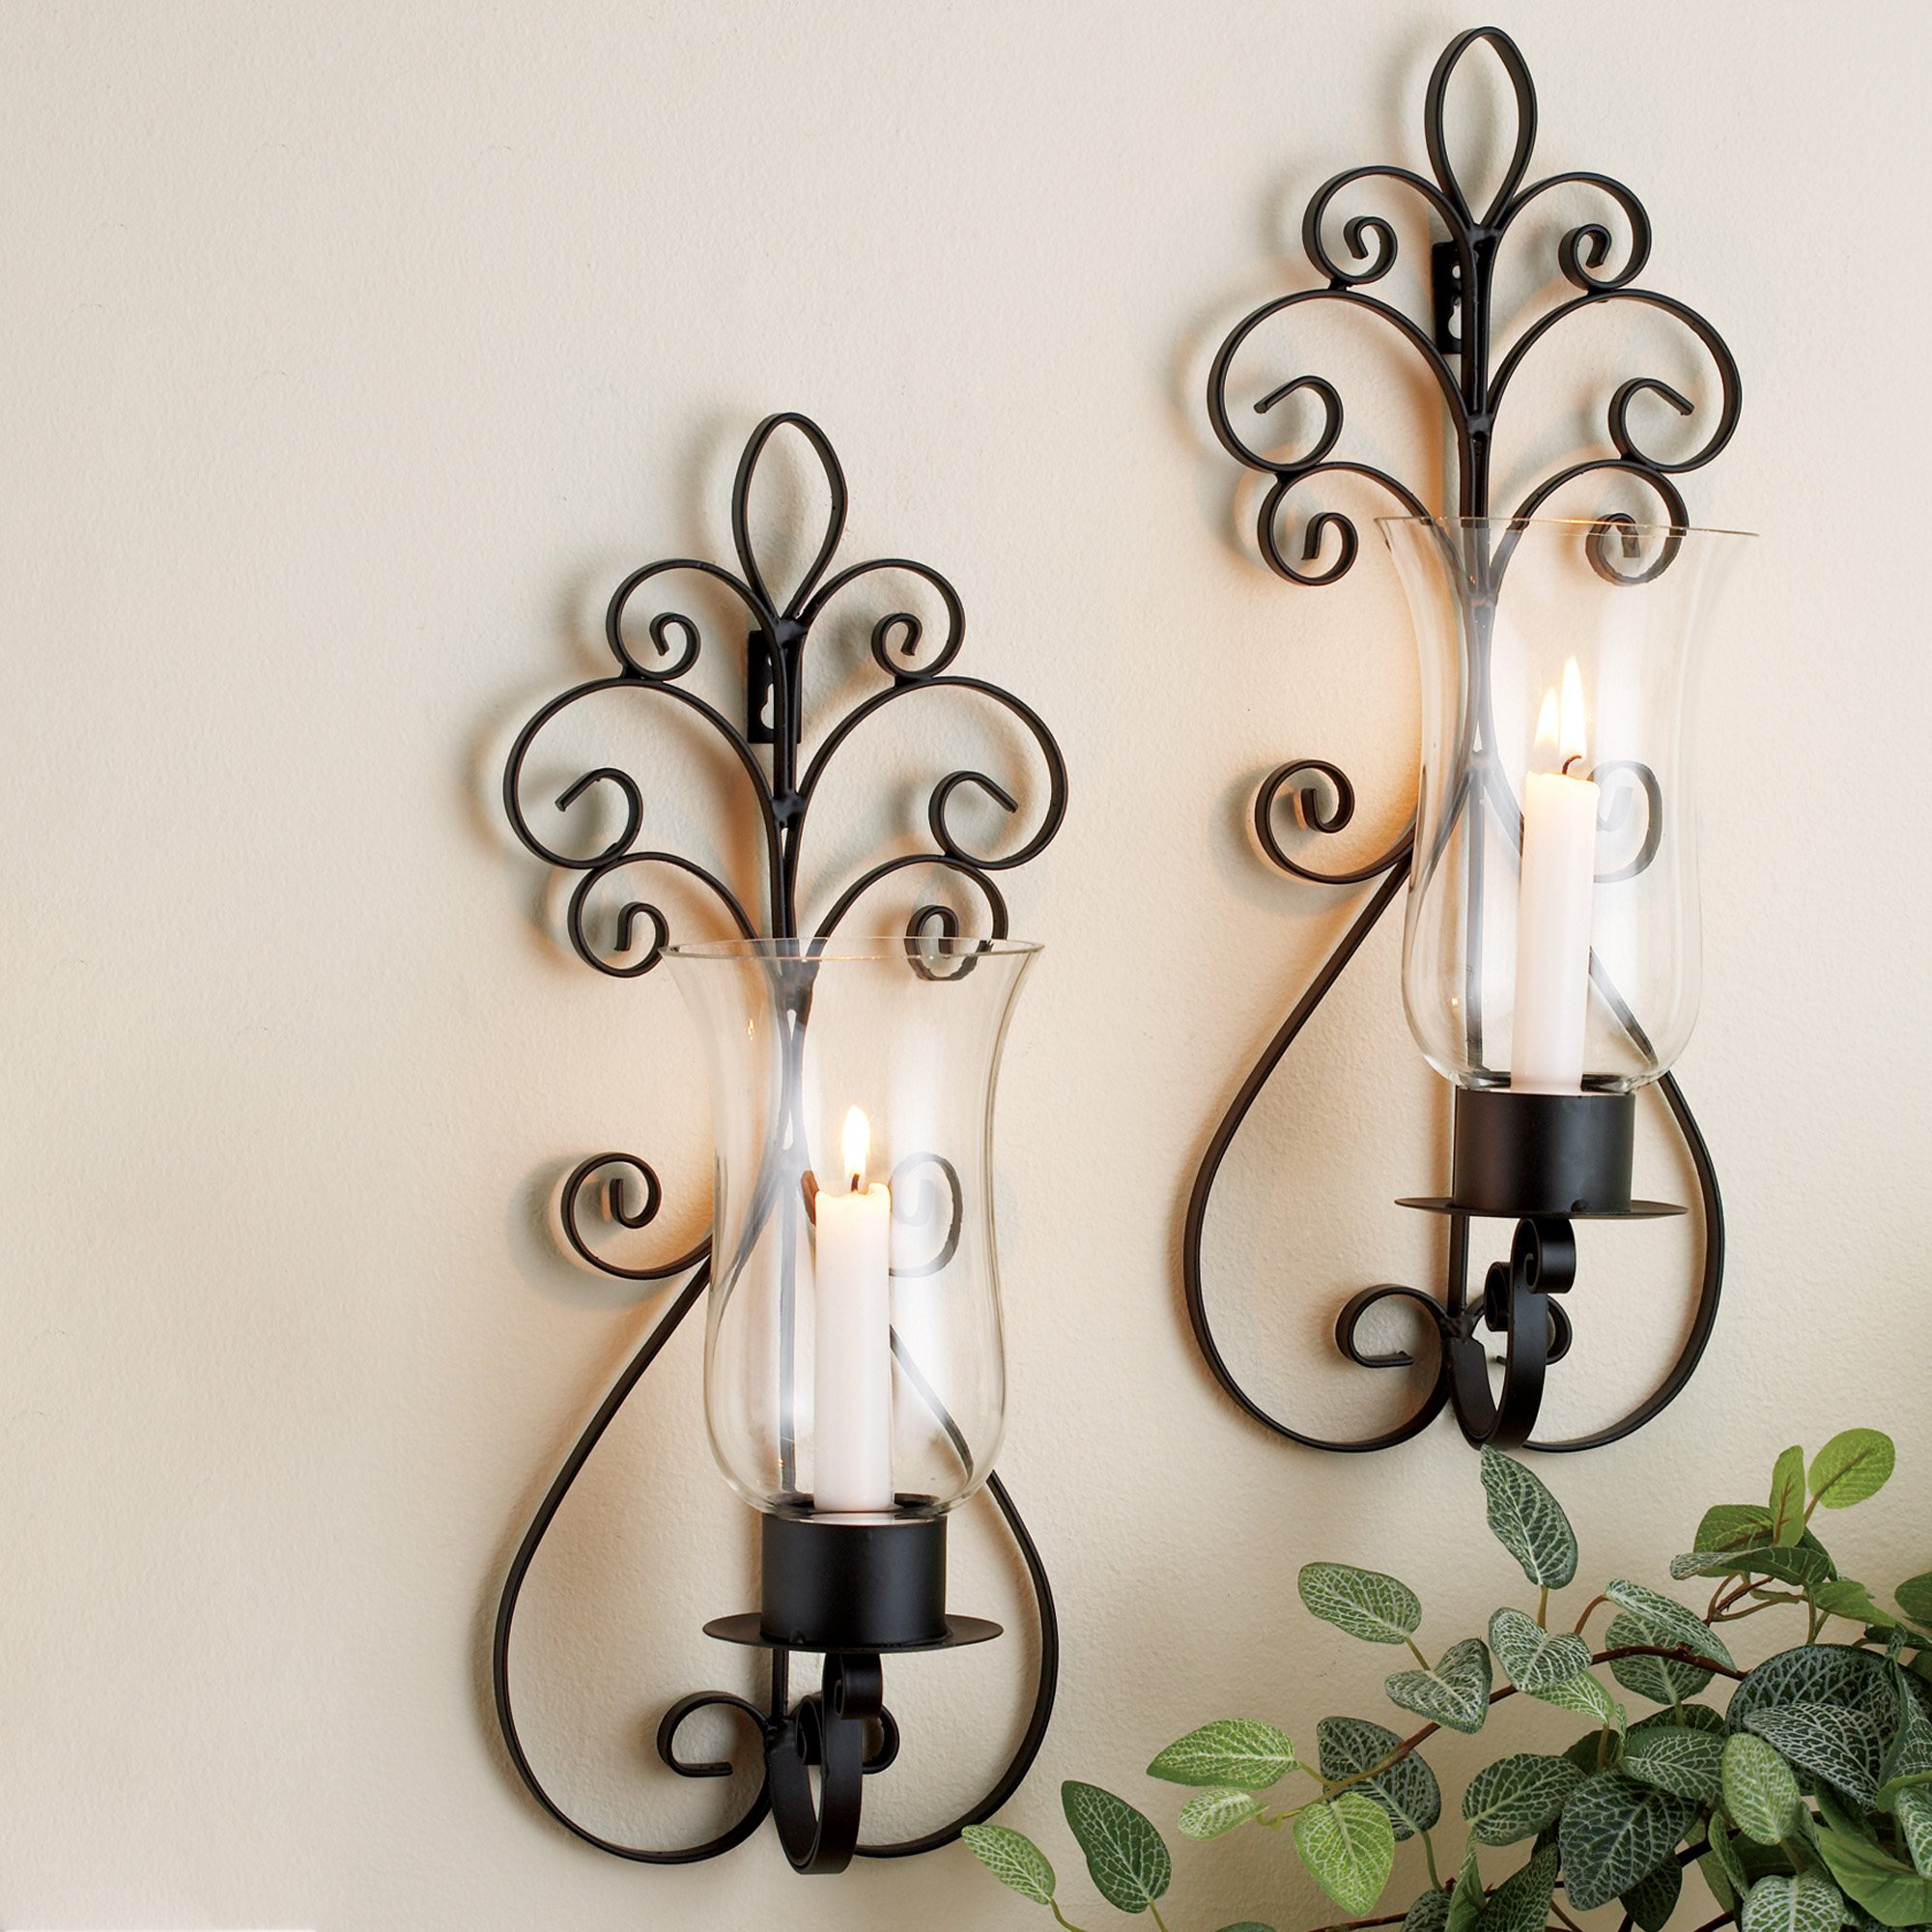 Set of Two Decorative Brown Metal and Pear Glass Wall Sconce Candle Holde,r Wall Lighting - Set of Two Pear Sconces, Perfect for a living room dining room or entry way